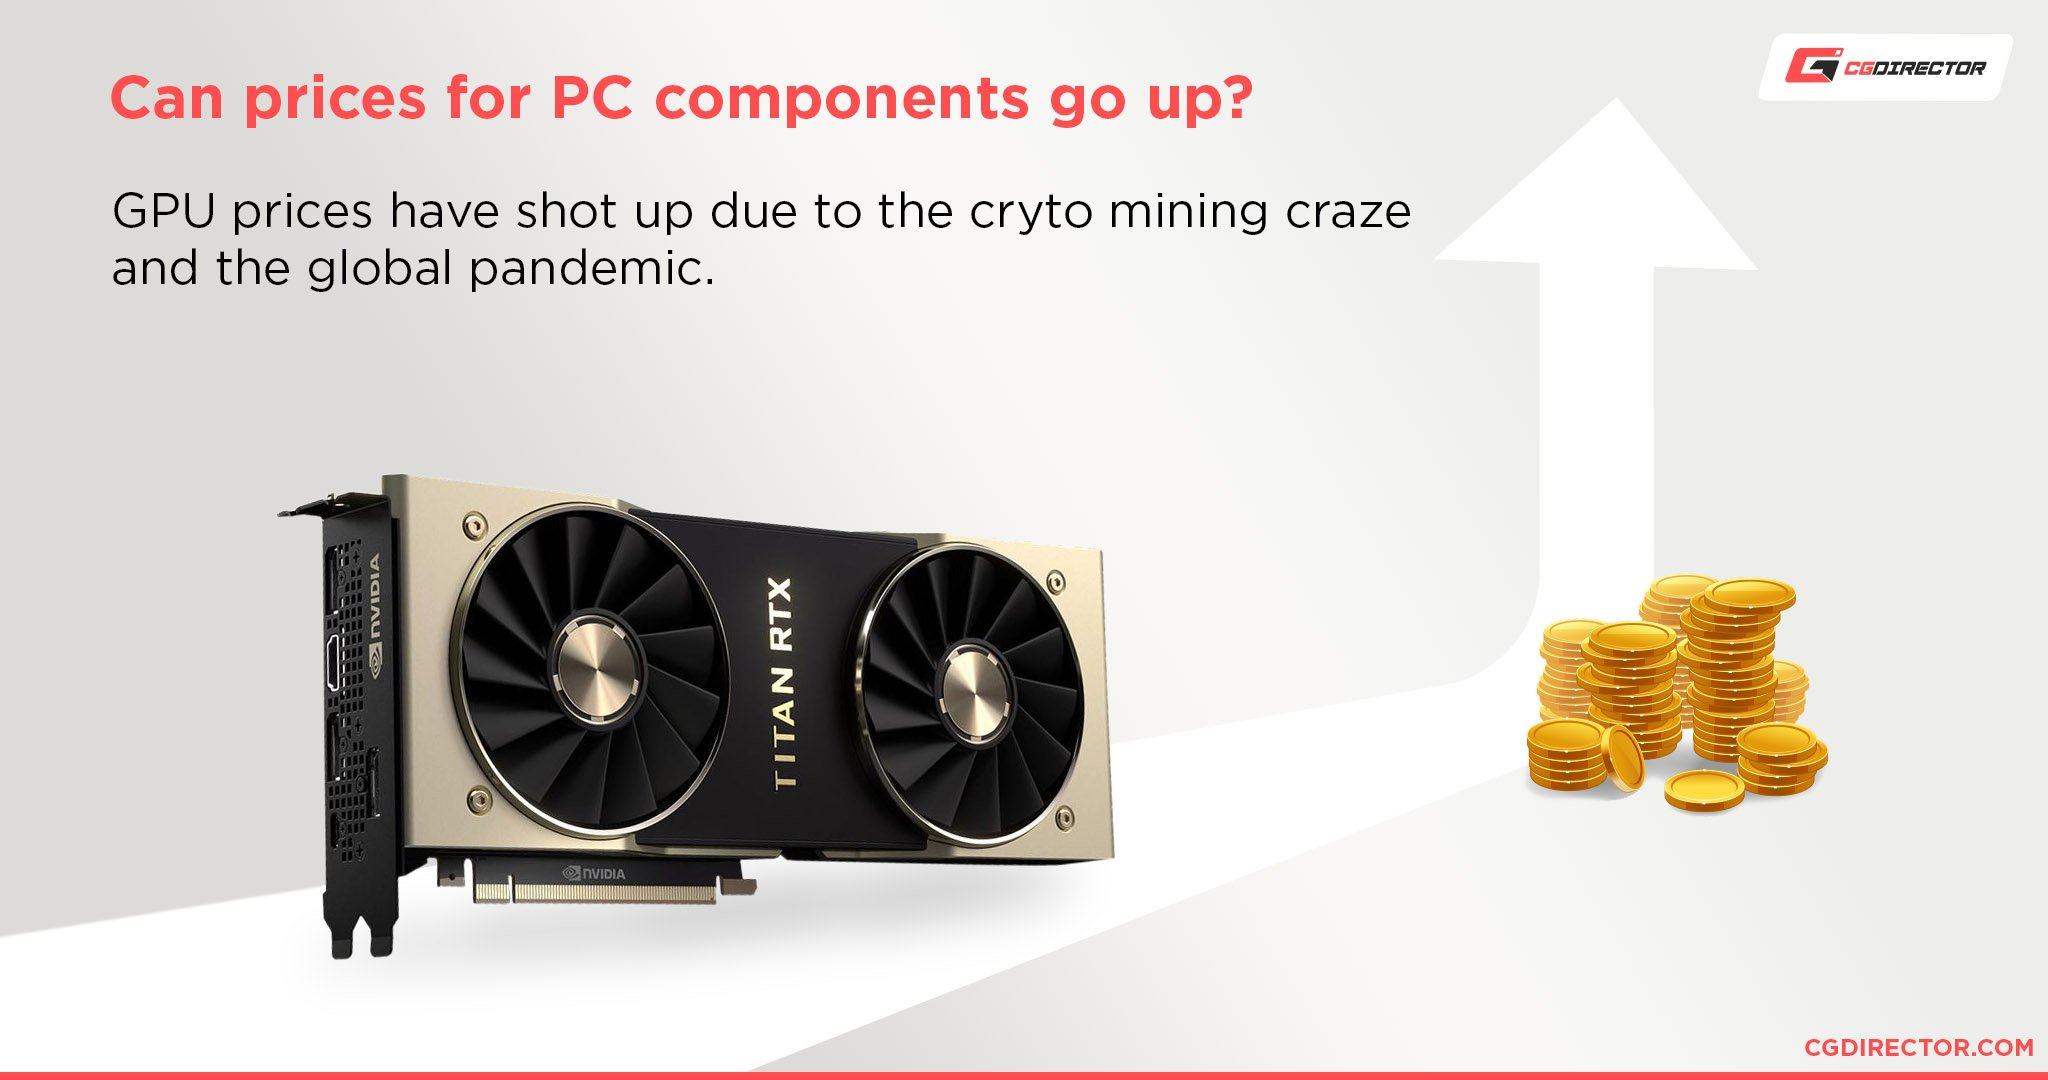 Can prices for PC components go up?